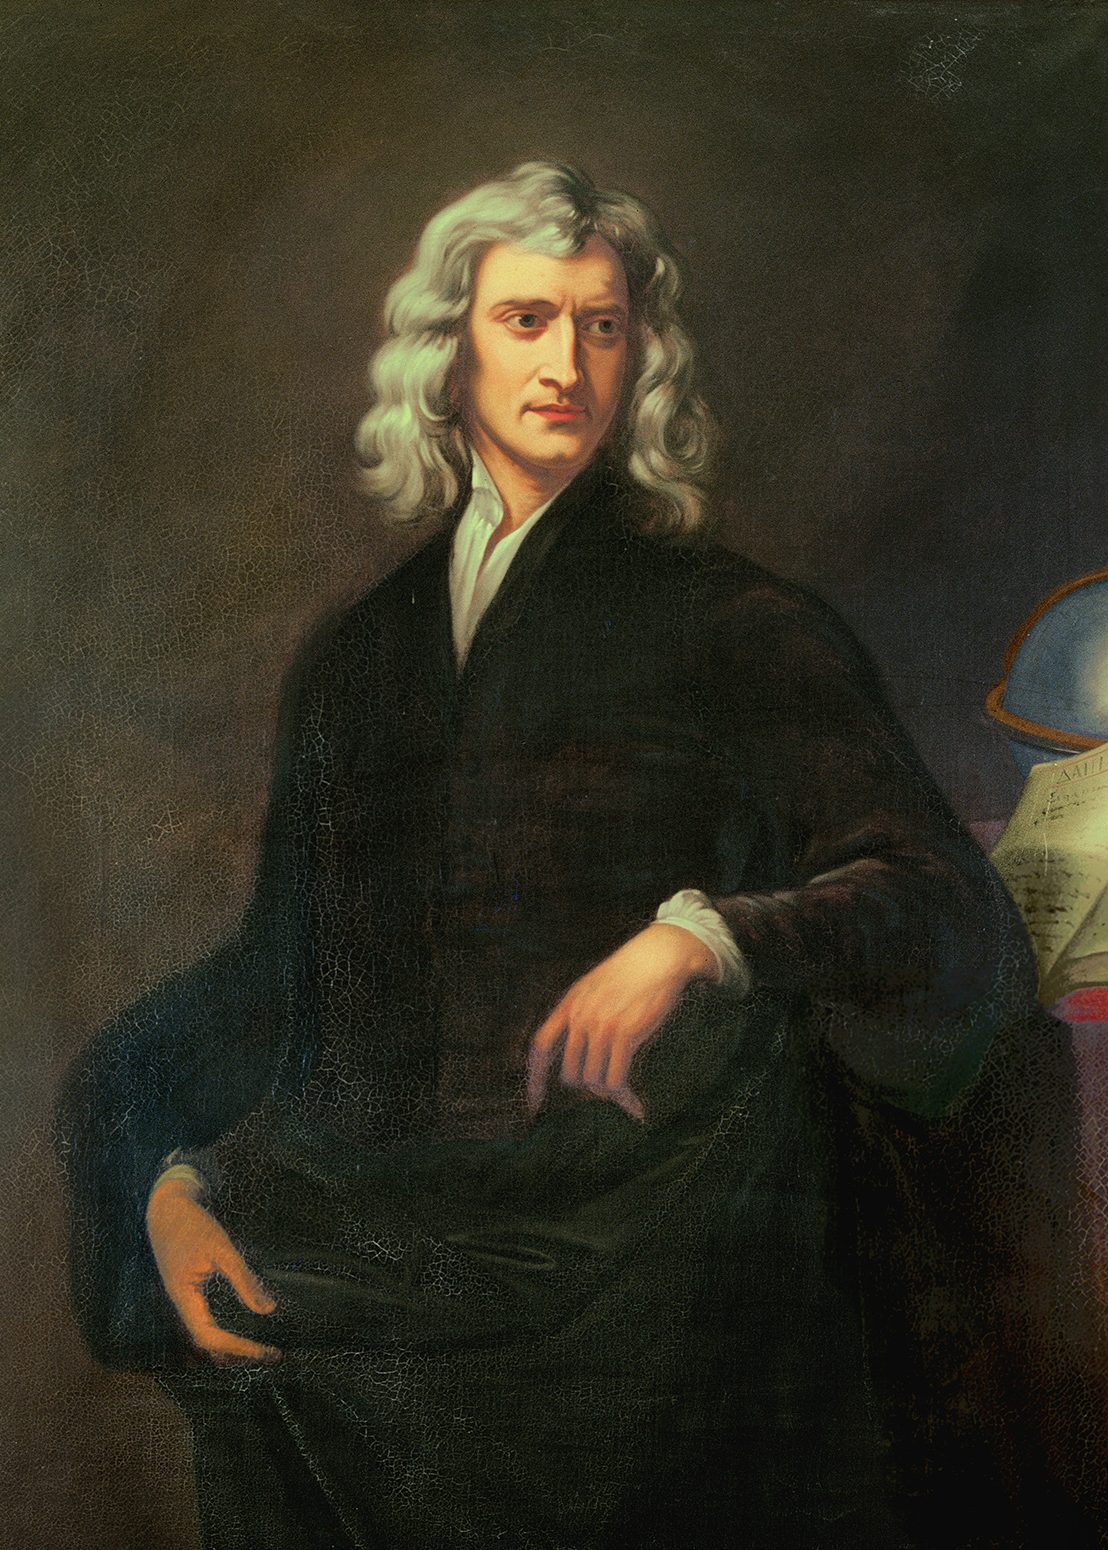 a biography of isaac newton the english physicist and mathematician Isaac newton is considered one of the greatest scientists and physicists who ever lived newton invented a new kind of mathematics called calculus, discovered how.